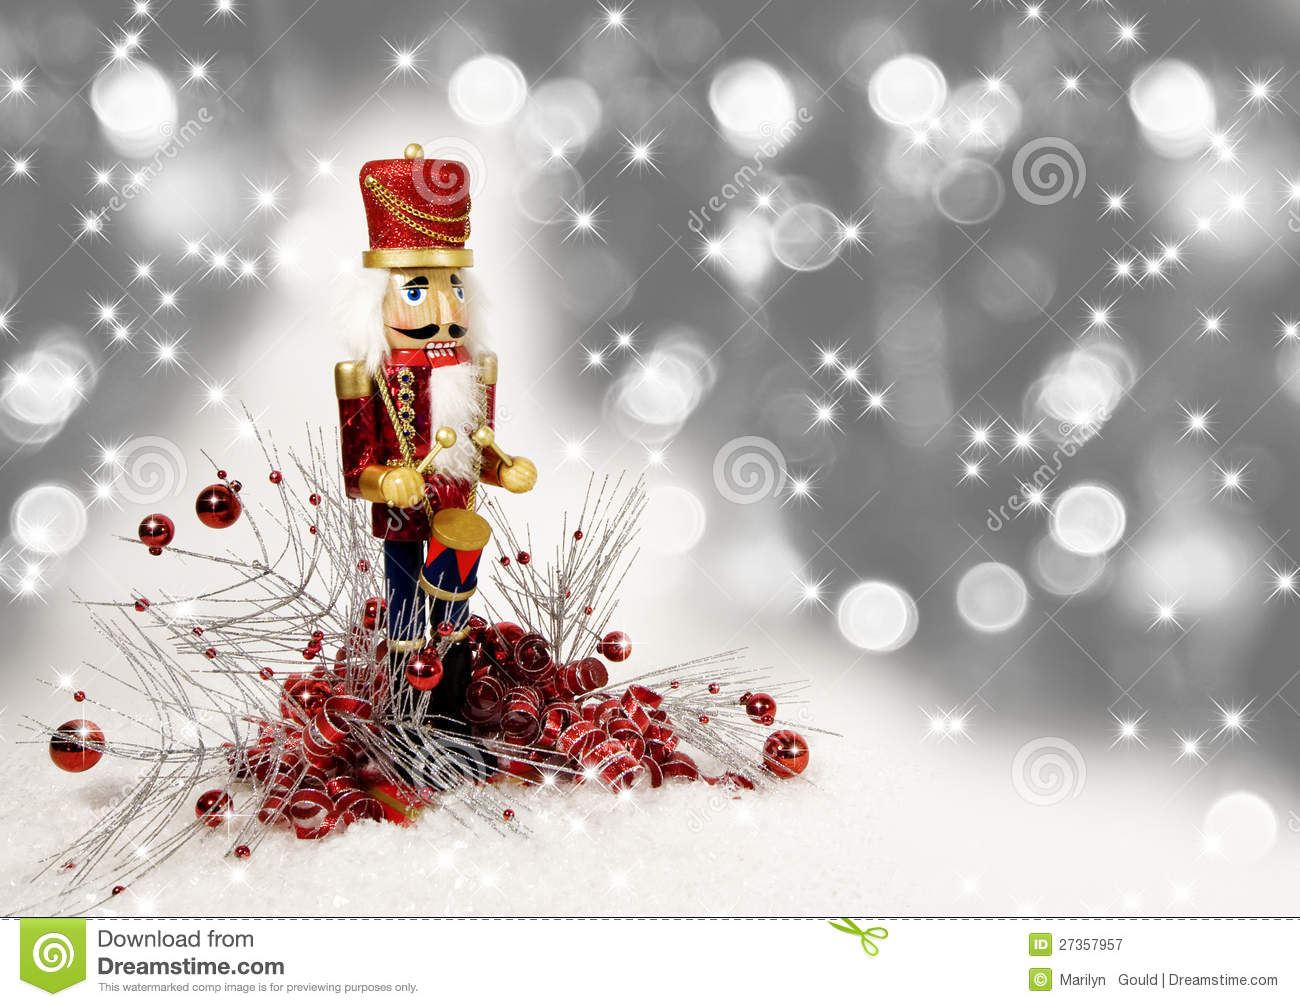 Christmas Drummer.Christmas Nutcracker Drummer Stock Image Image Of Winter